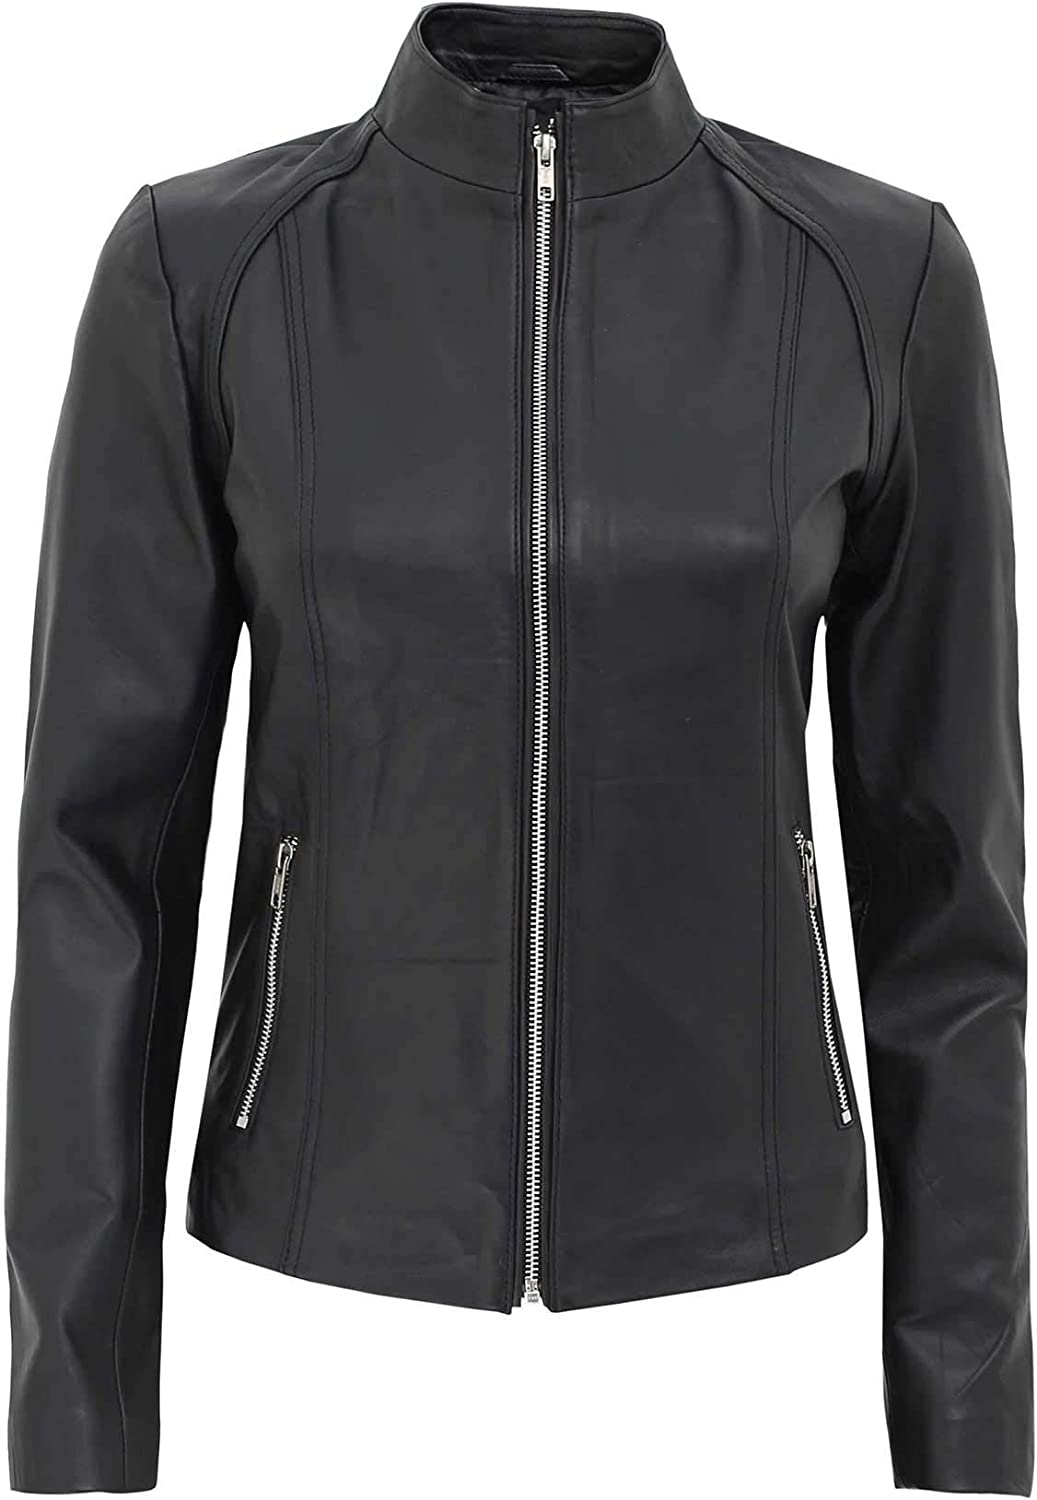 Fjackets Black Leather Jacket for Women - Quilted Brown Lambskin Slim Fit Woman Leather Jacket